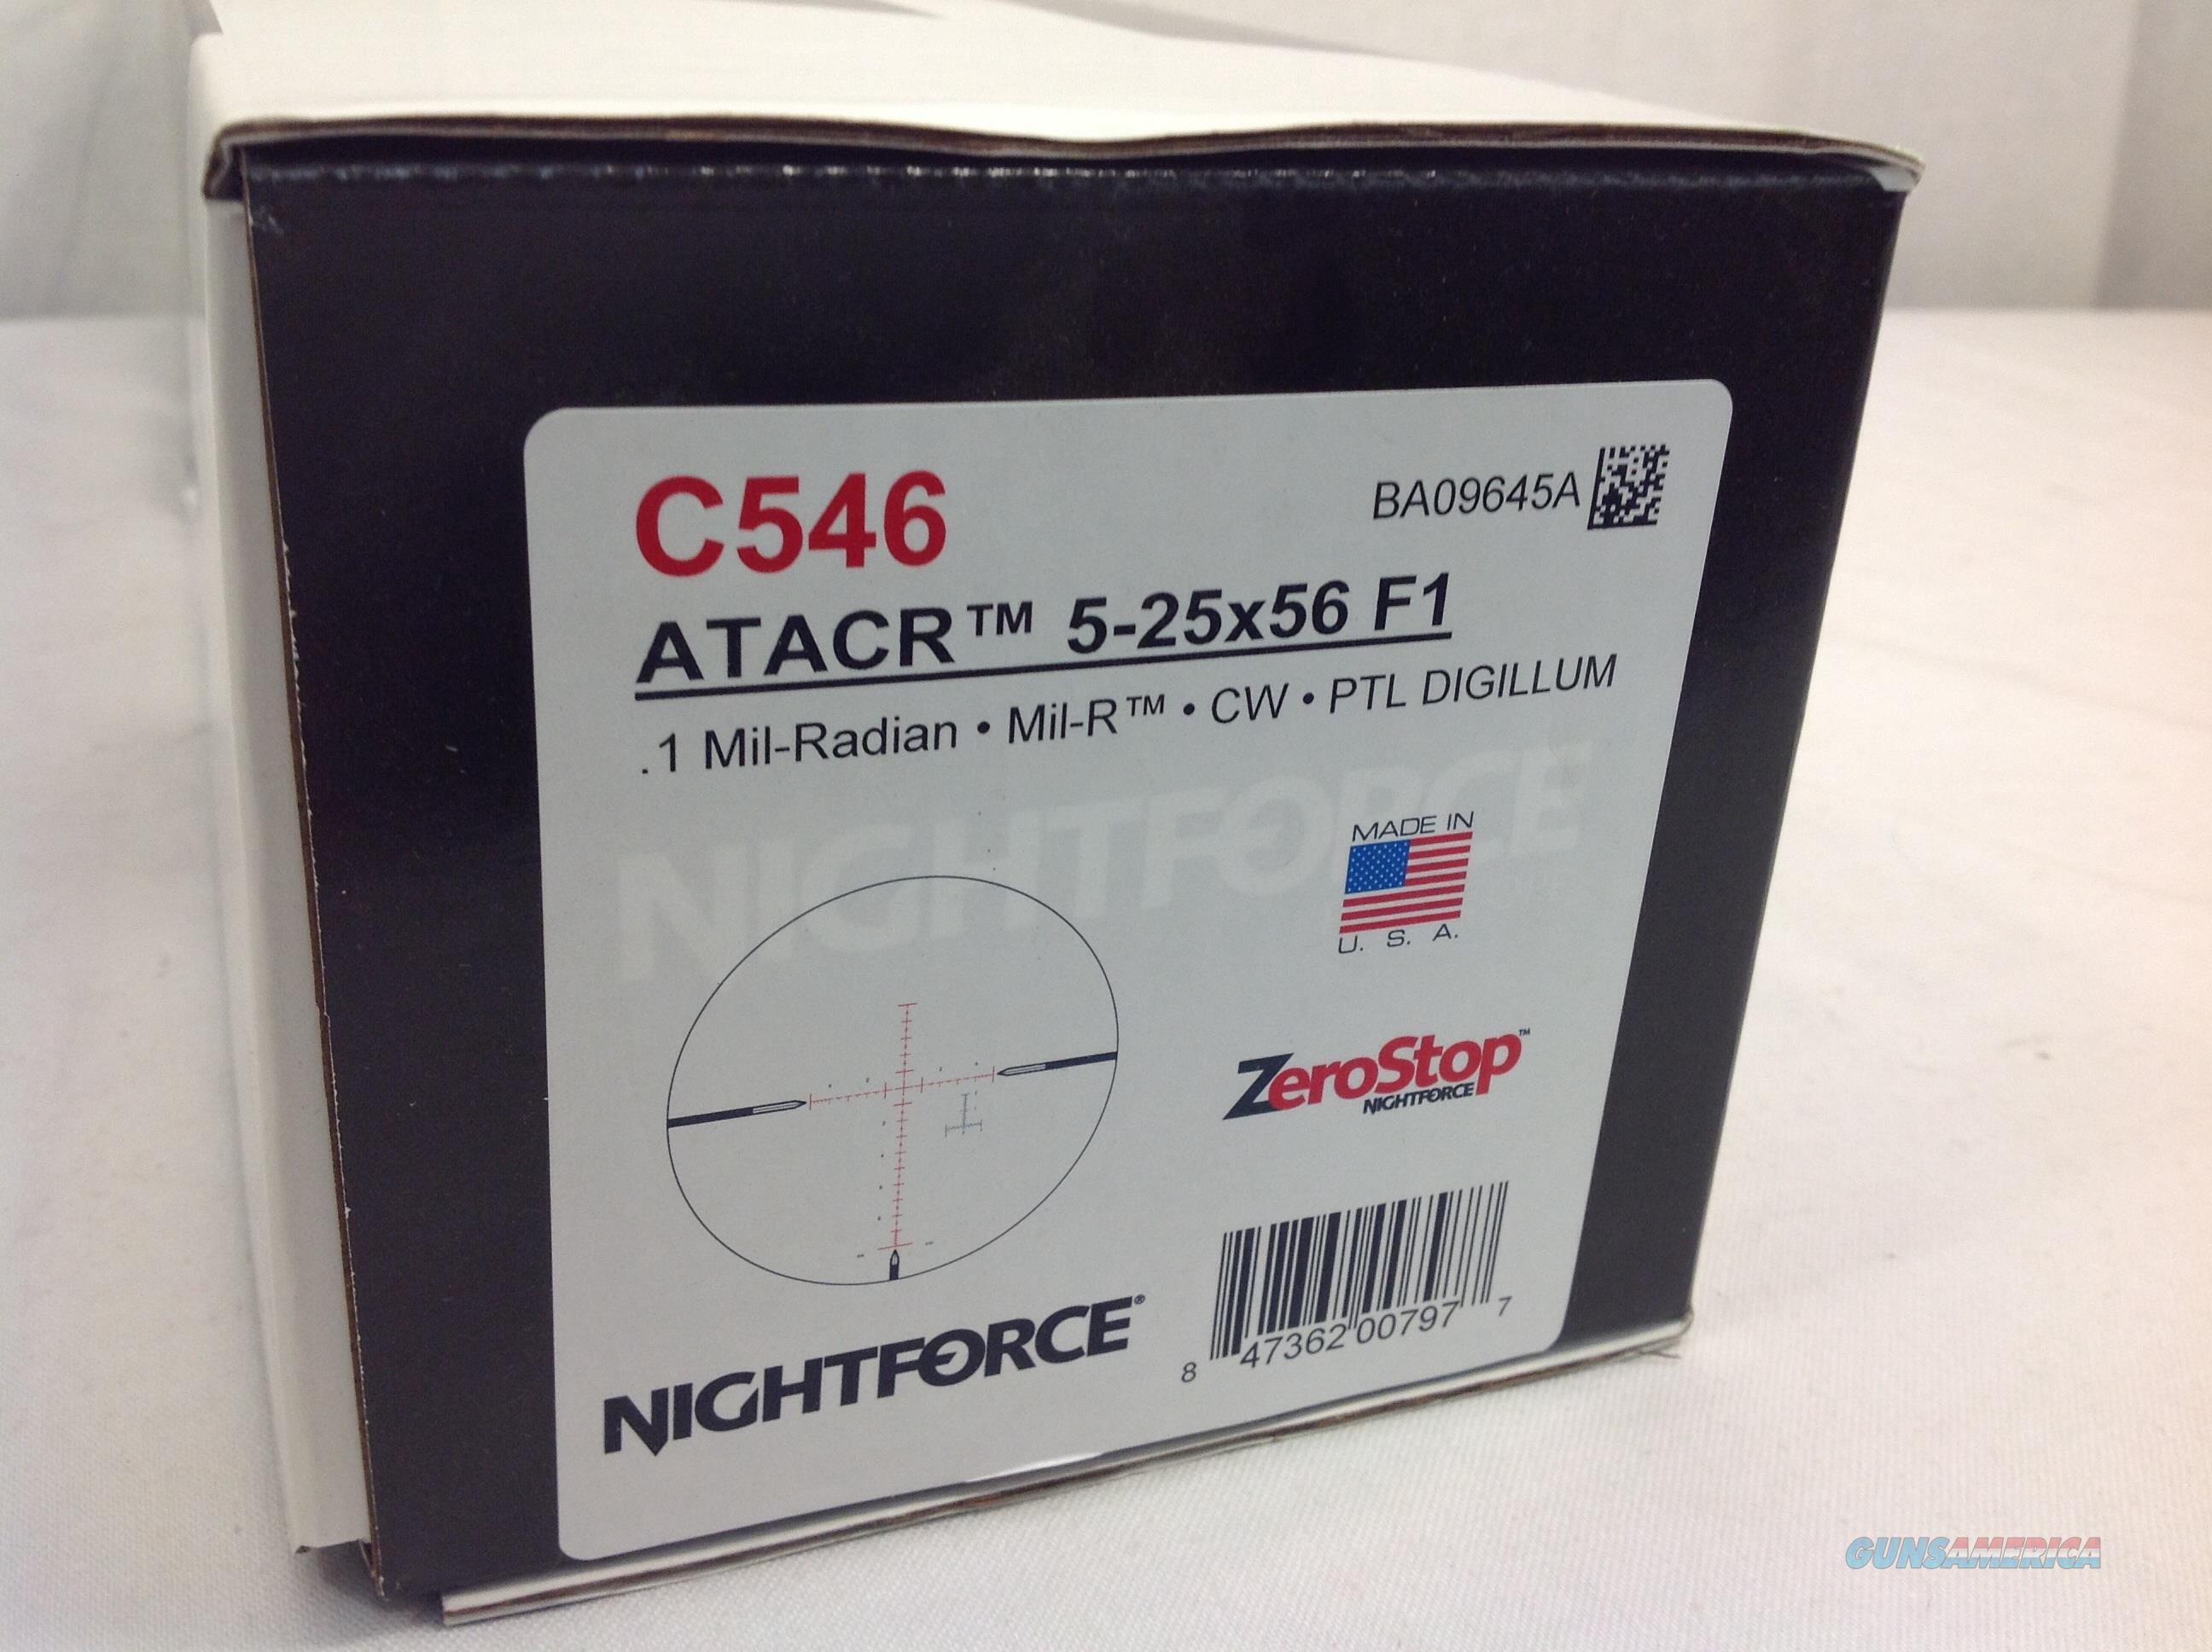 Nightforce 5-25x56 F1  Non-Guns > Scopes/Mounts/Rings & Optics > Rifle Scopes > Variable Focal Length